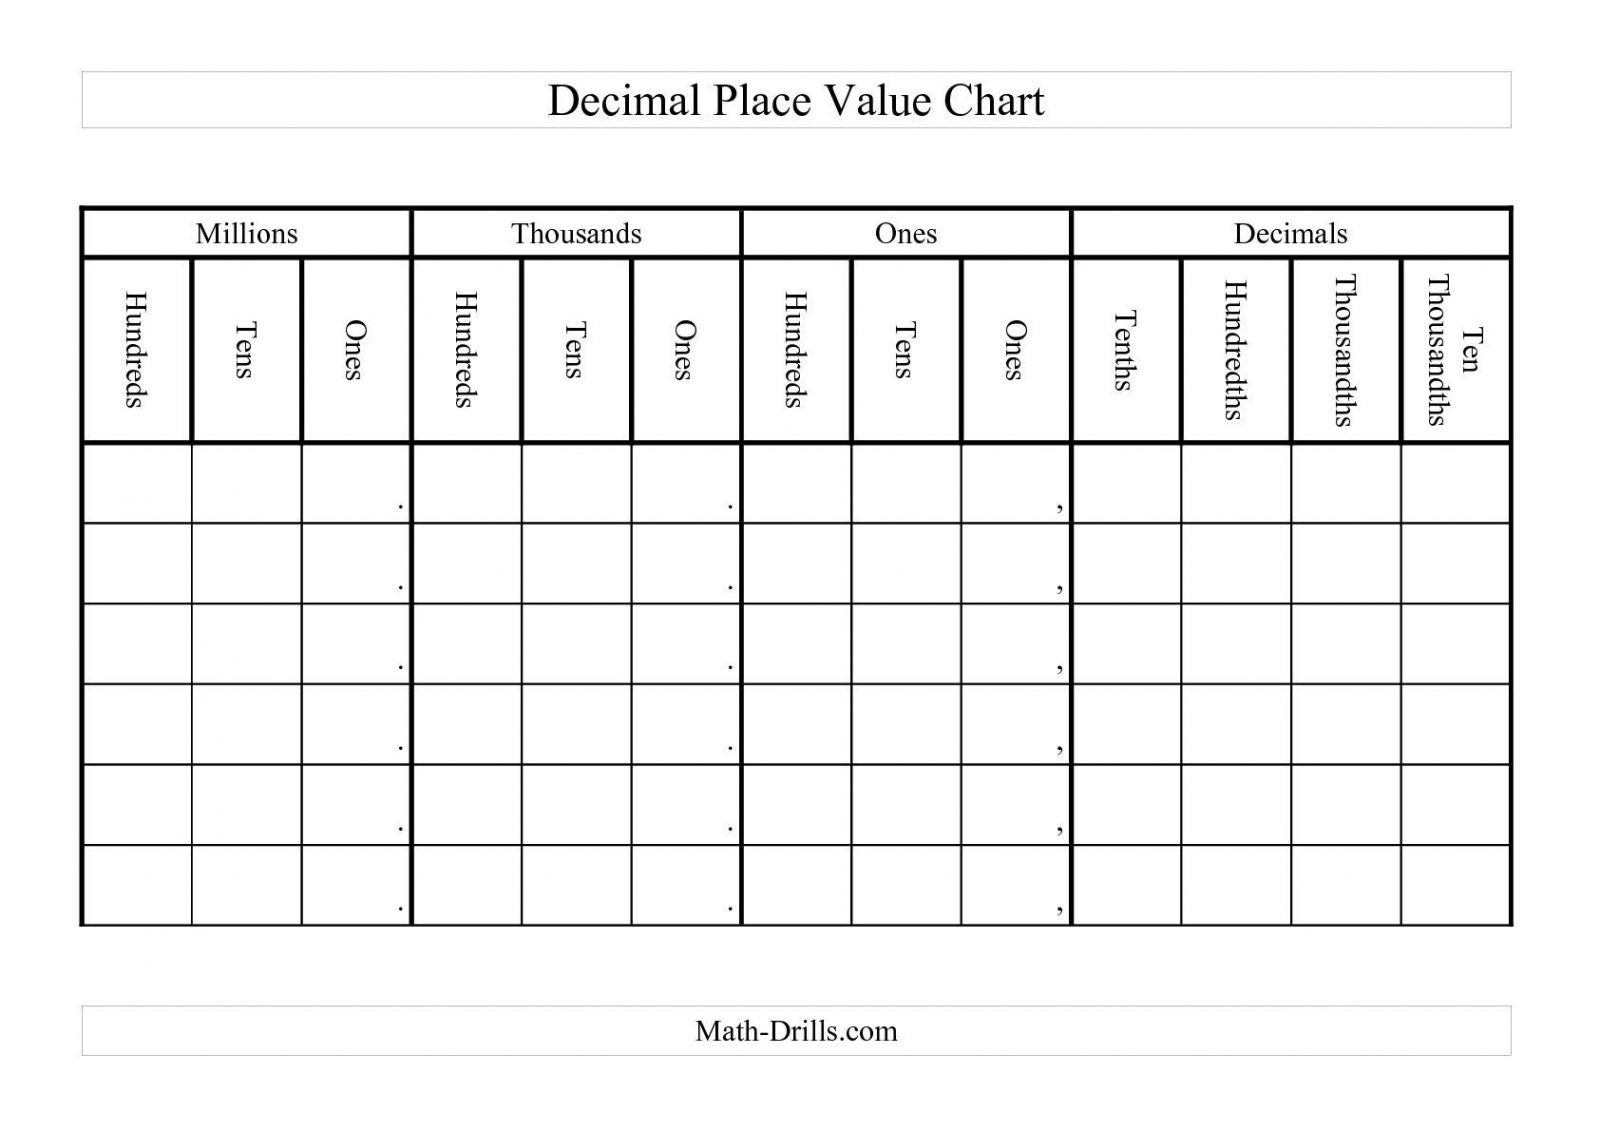 Free Printable Place Value Chart To Millions Free Place Value Chart Printable Hundredths To Inc In 2020 Place Value With Decimals Place Value Chart Decimals Worksheets